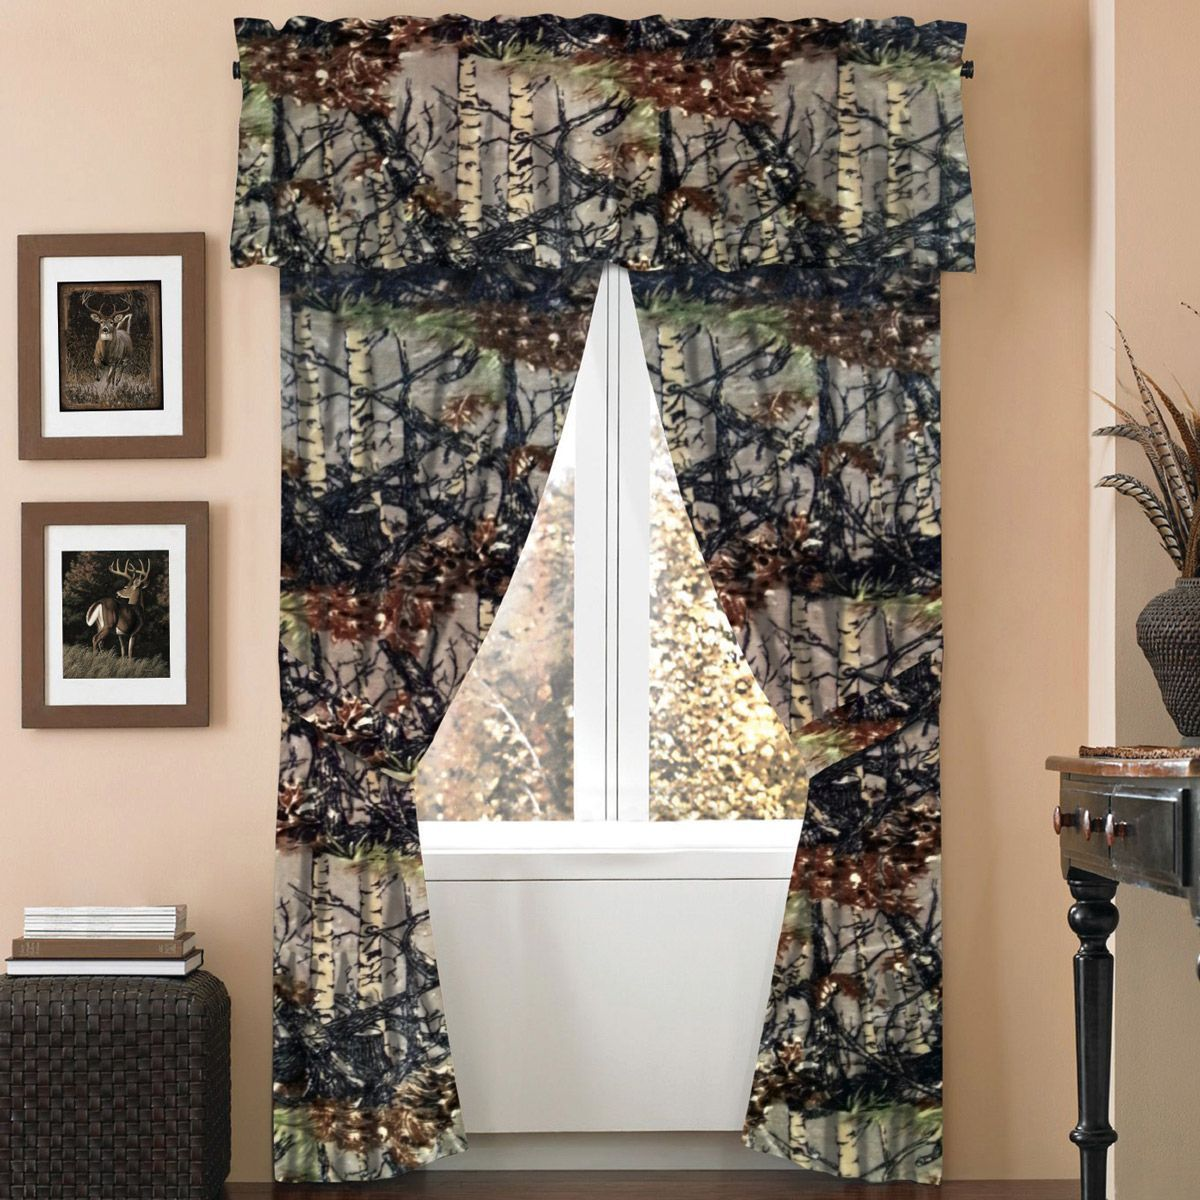 Natural Woodland Camouflage Curtain Set Curtains Rustic Curtains Curtain Sets